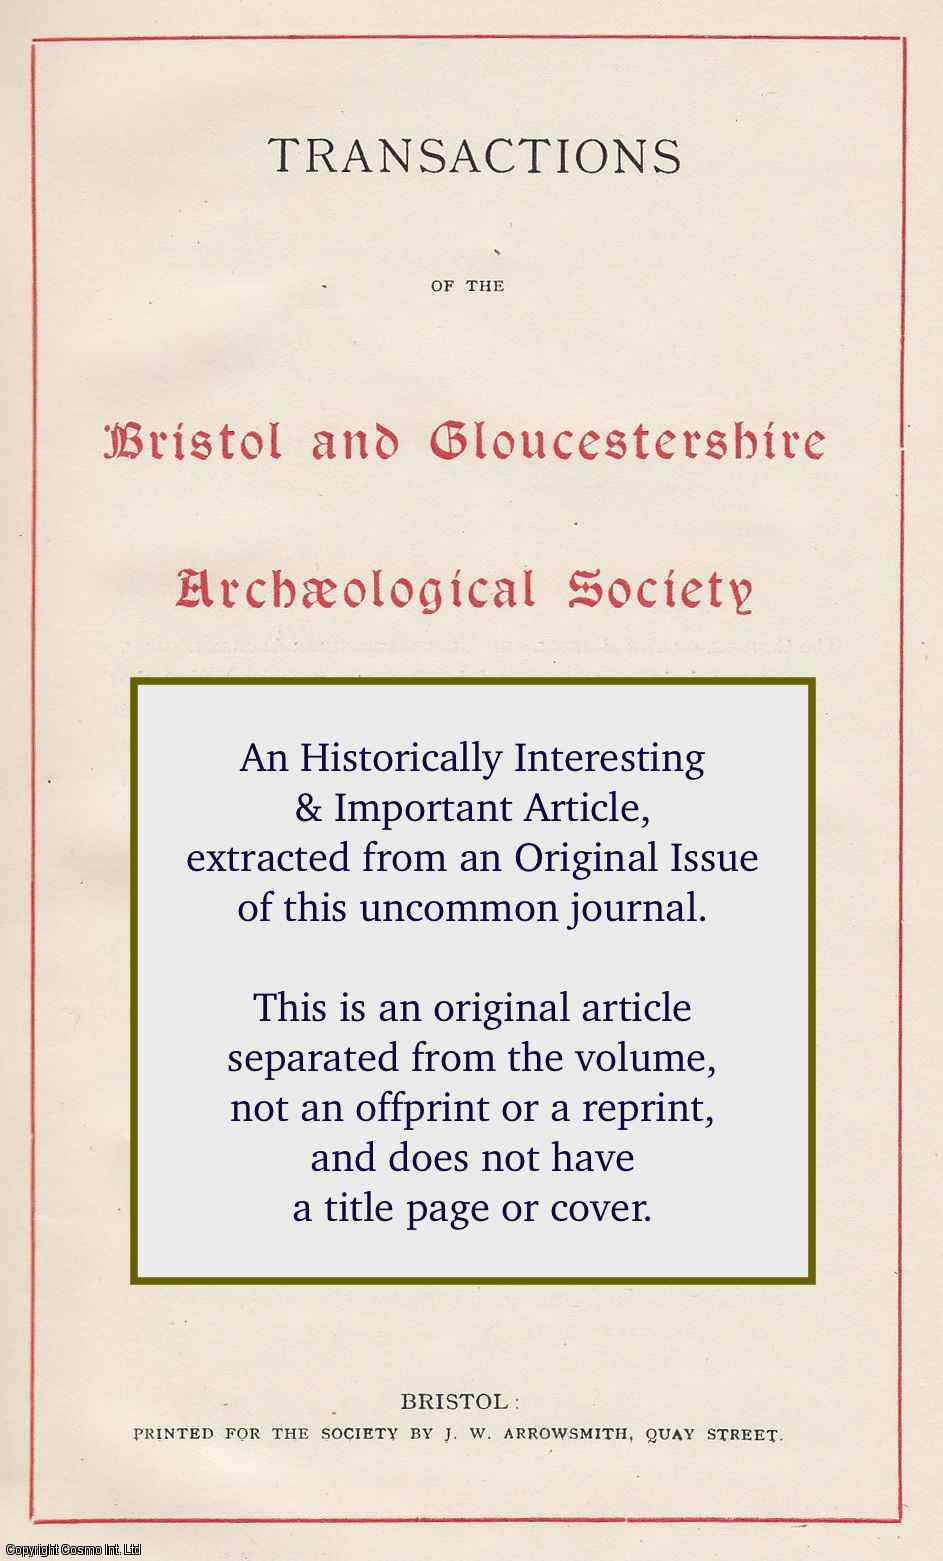 ALLEN, J. R. L. - A Post Roman Pottery Assemblage from Hills Flats, South Gloucestershire: Trade and Communication by Water in The Severn Estuary. An original article from the Bristol and Gloucestershire Archaeological Society 2003.